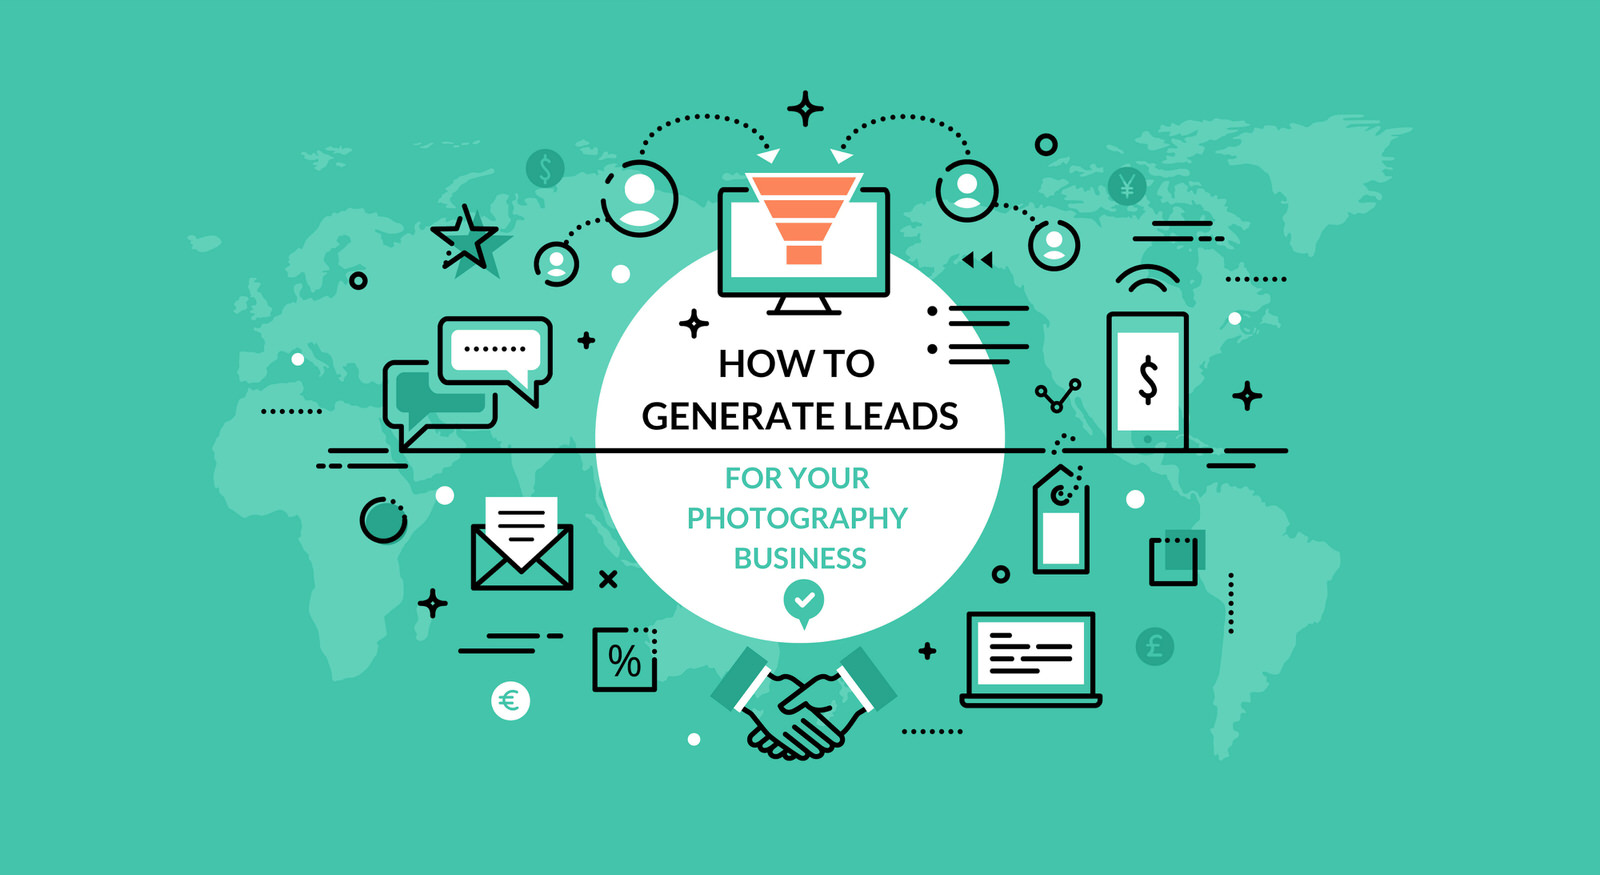 How to Generate Leads for Your Photography Business